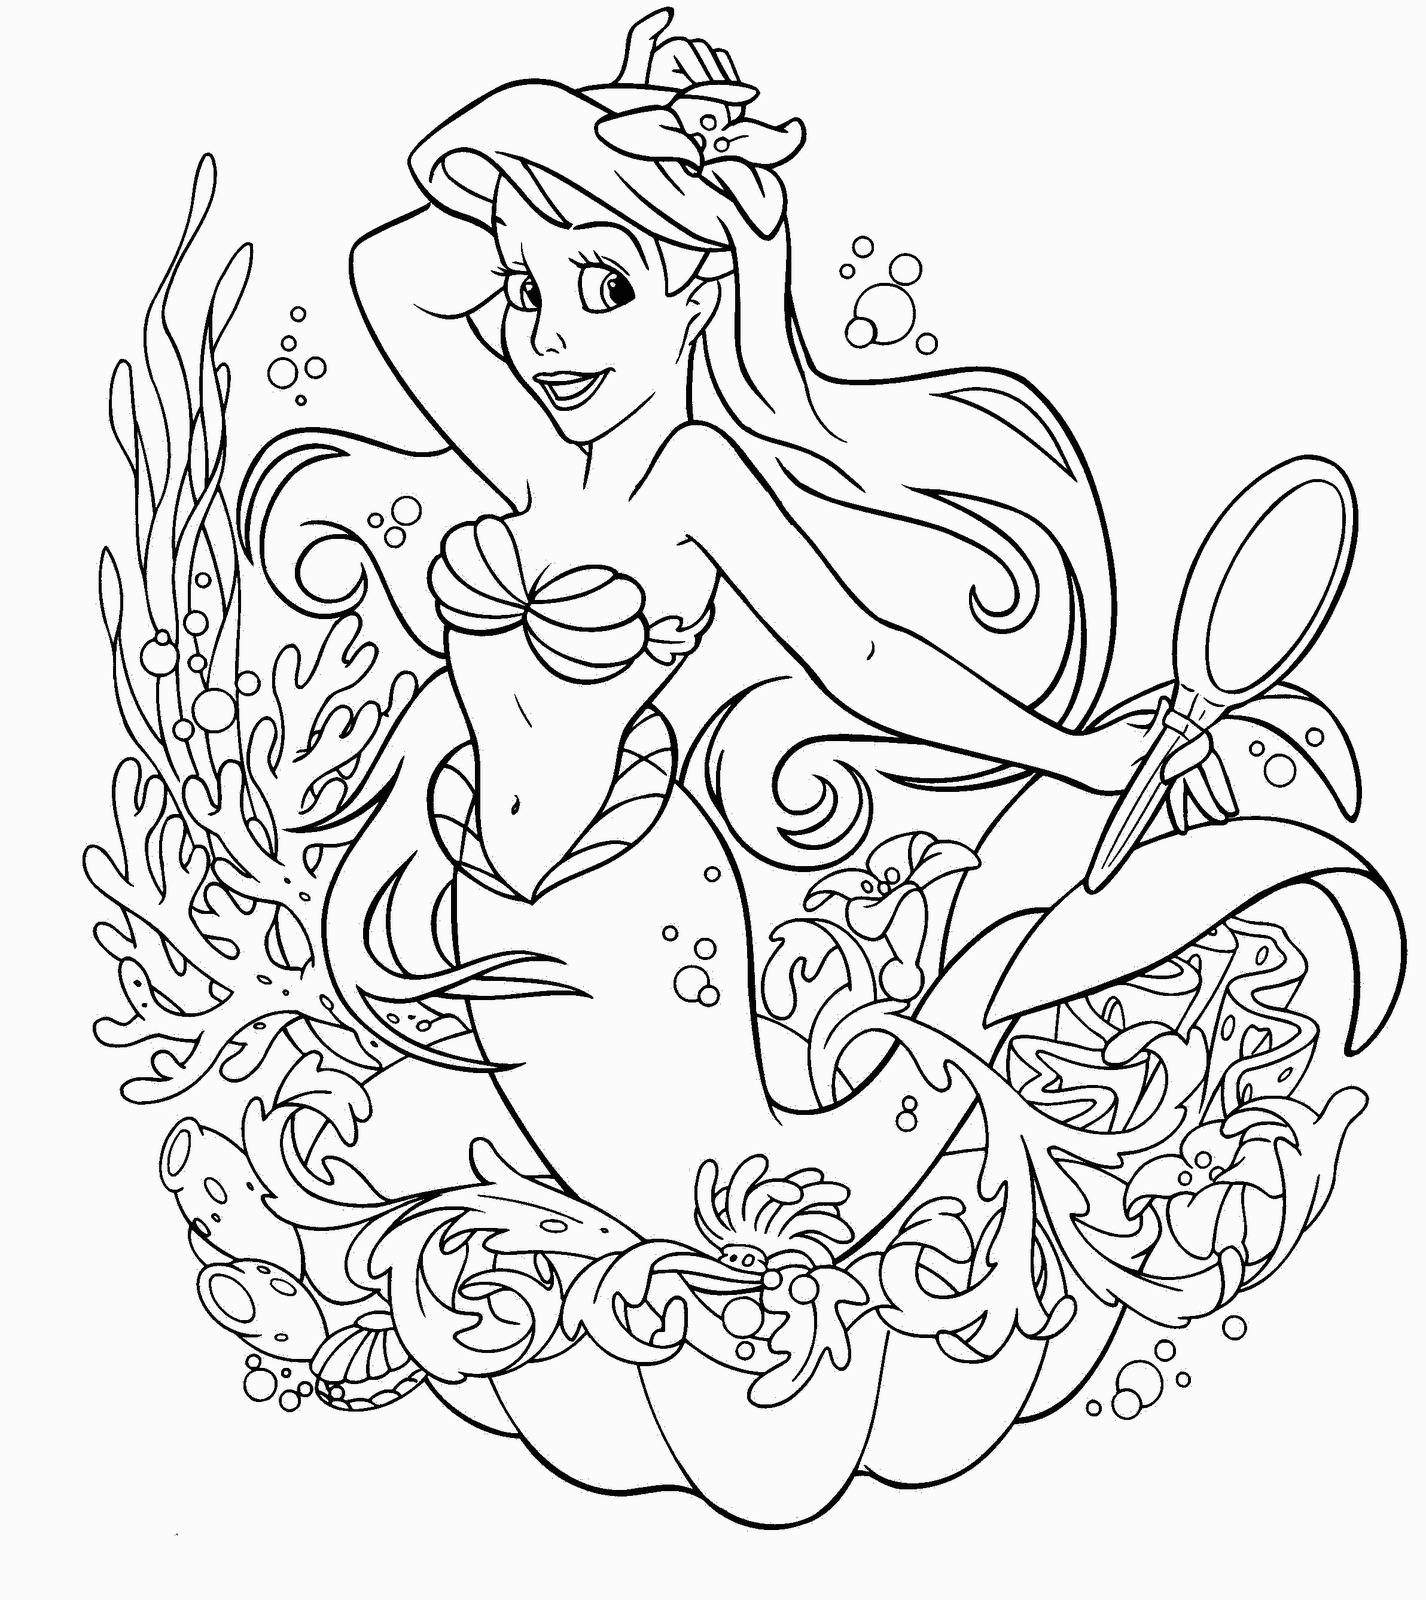 Coloring Pages Of Little Mermaid Disney Little Mermaid Coloring Page Best Gift Ideas Blog For Disney